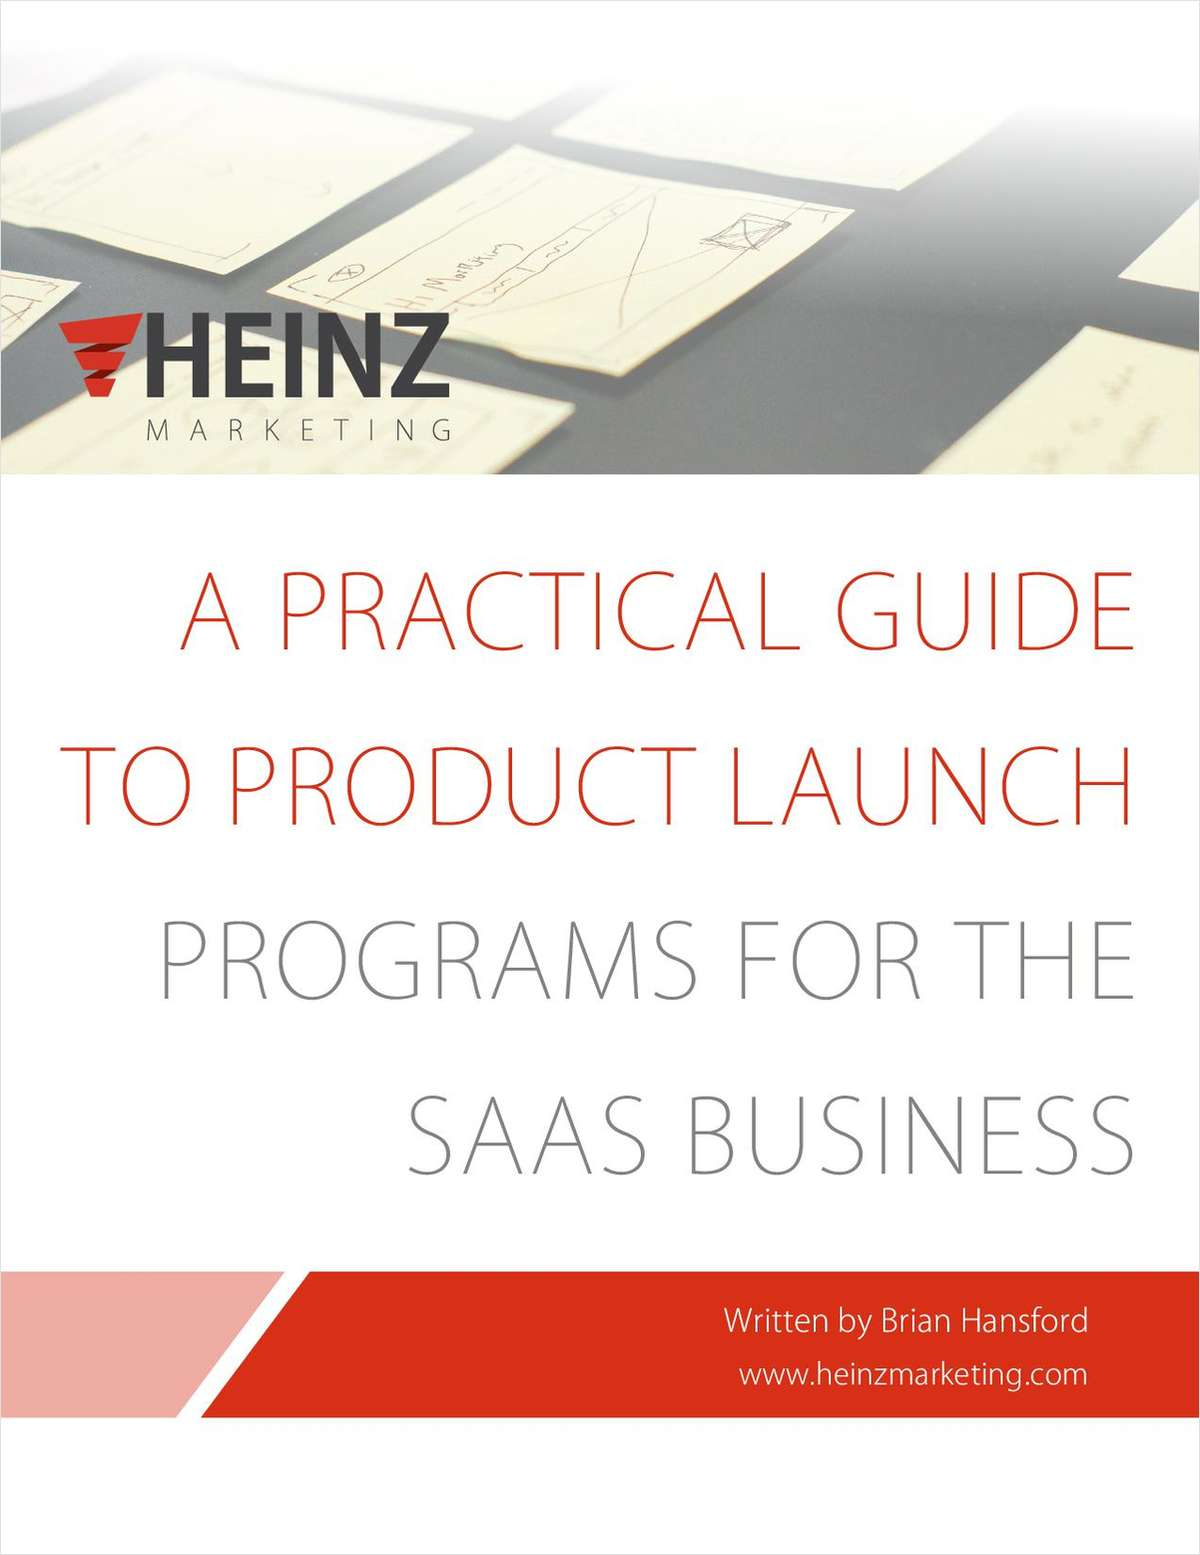 Guide to Product Launch Programs for the Saas Business